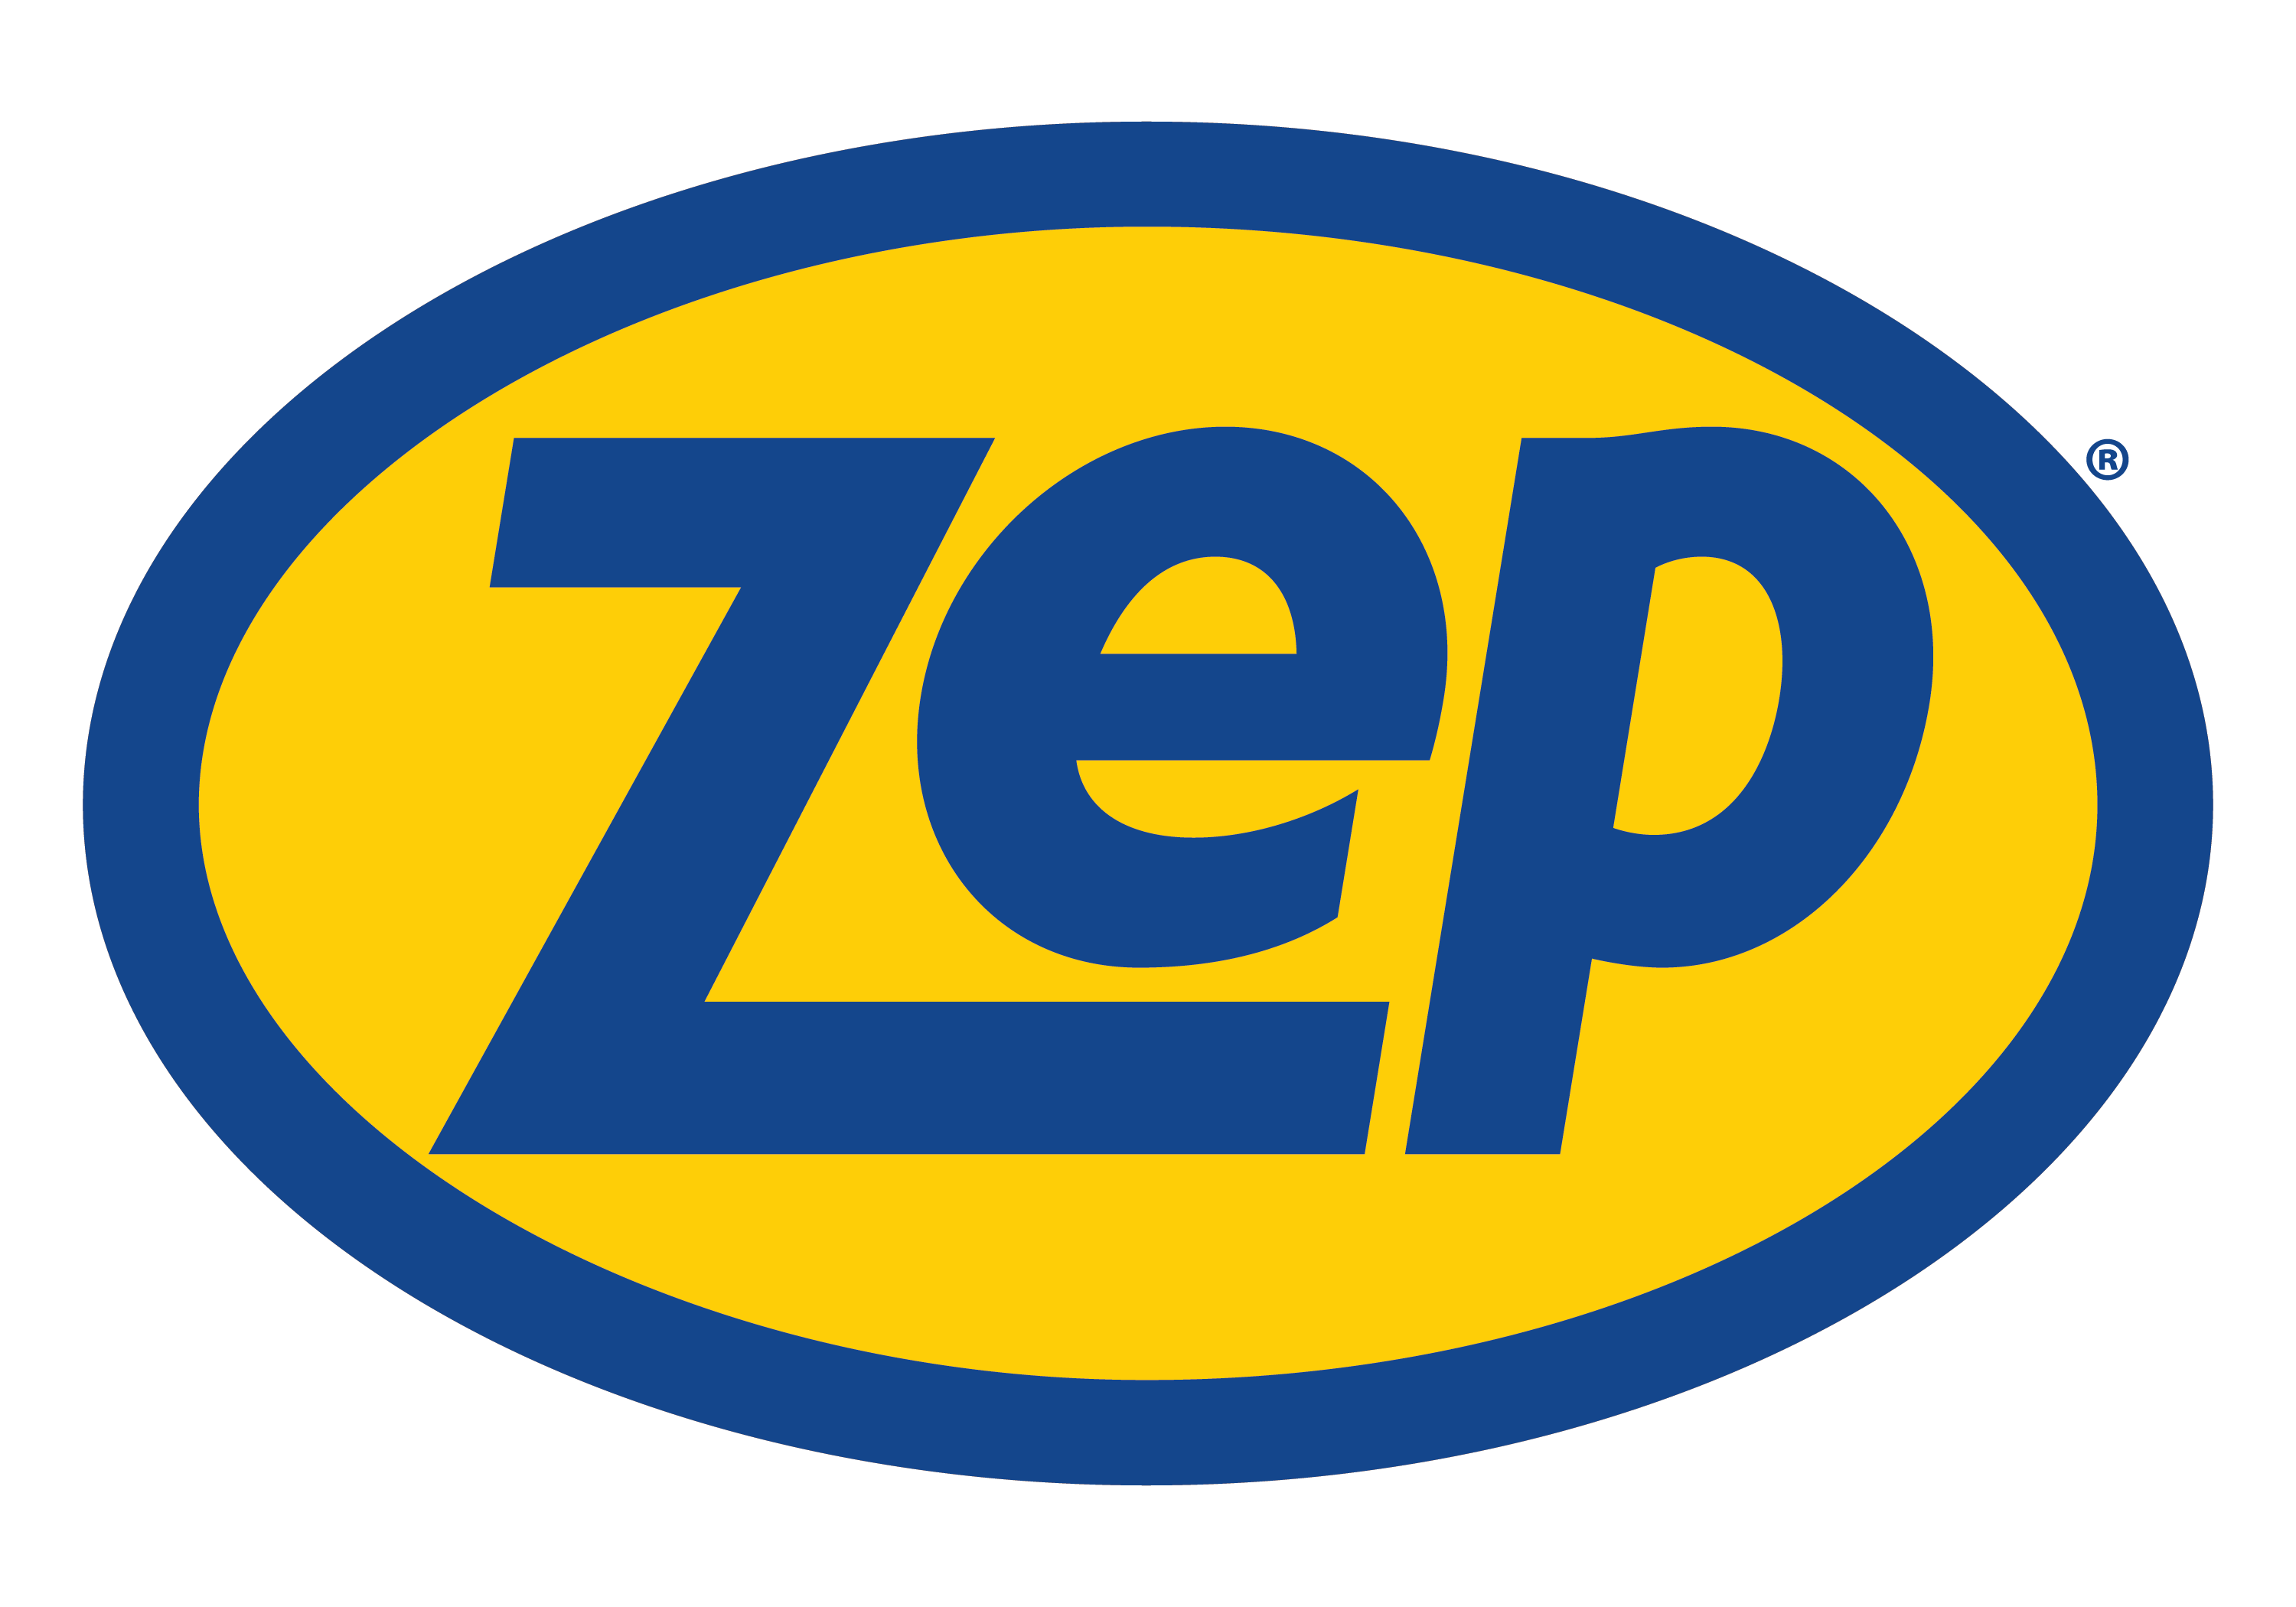 Zep UK Limited